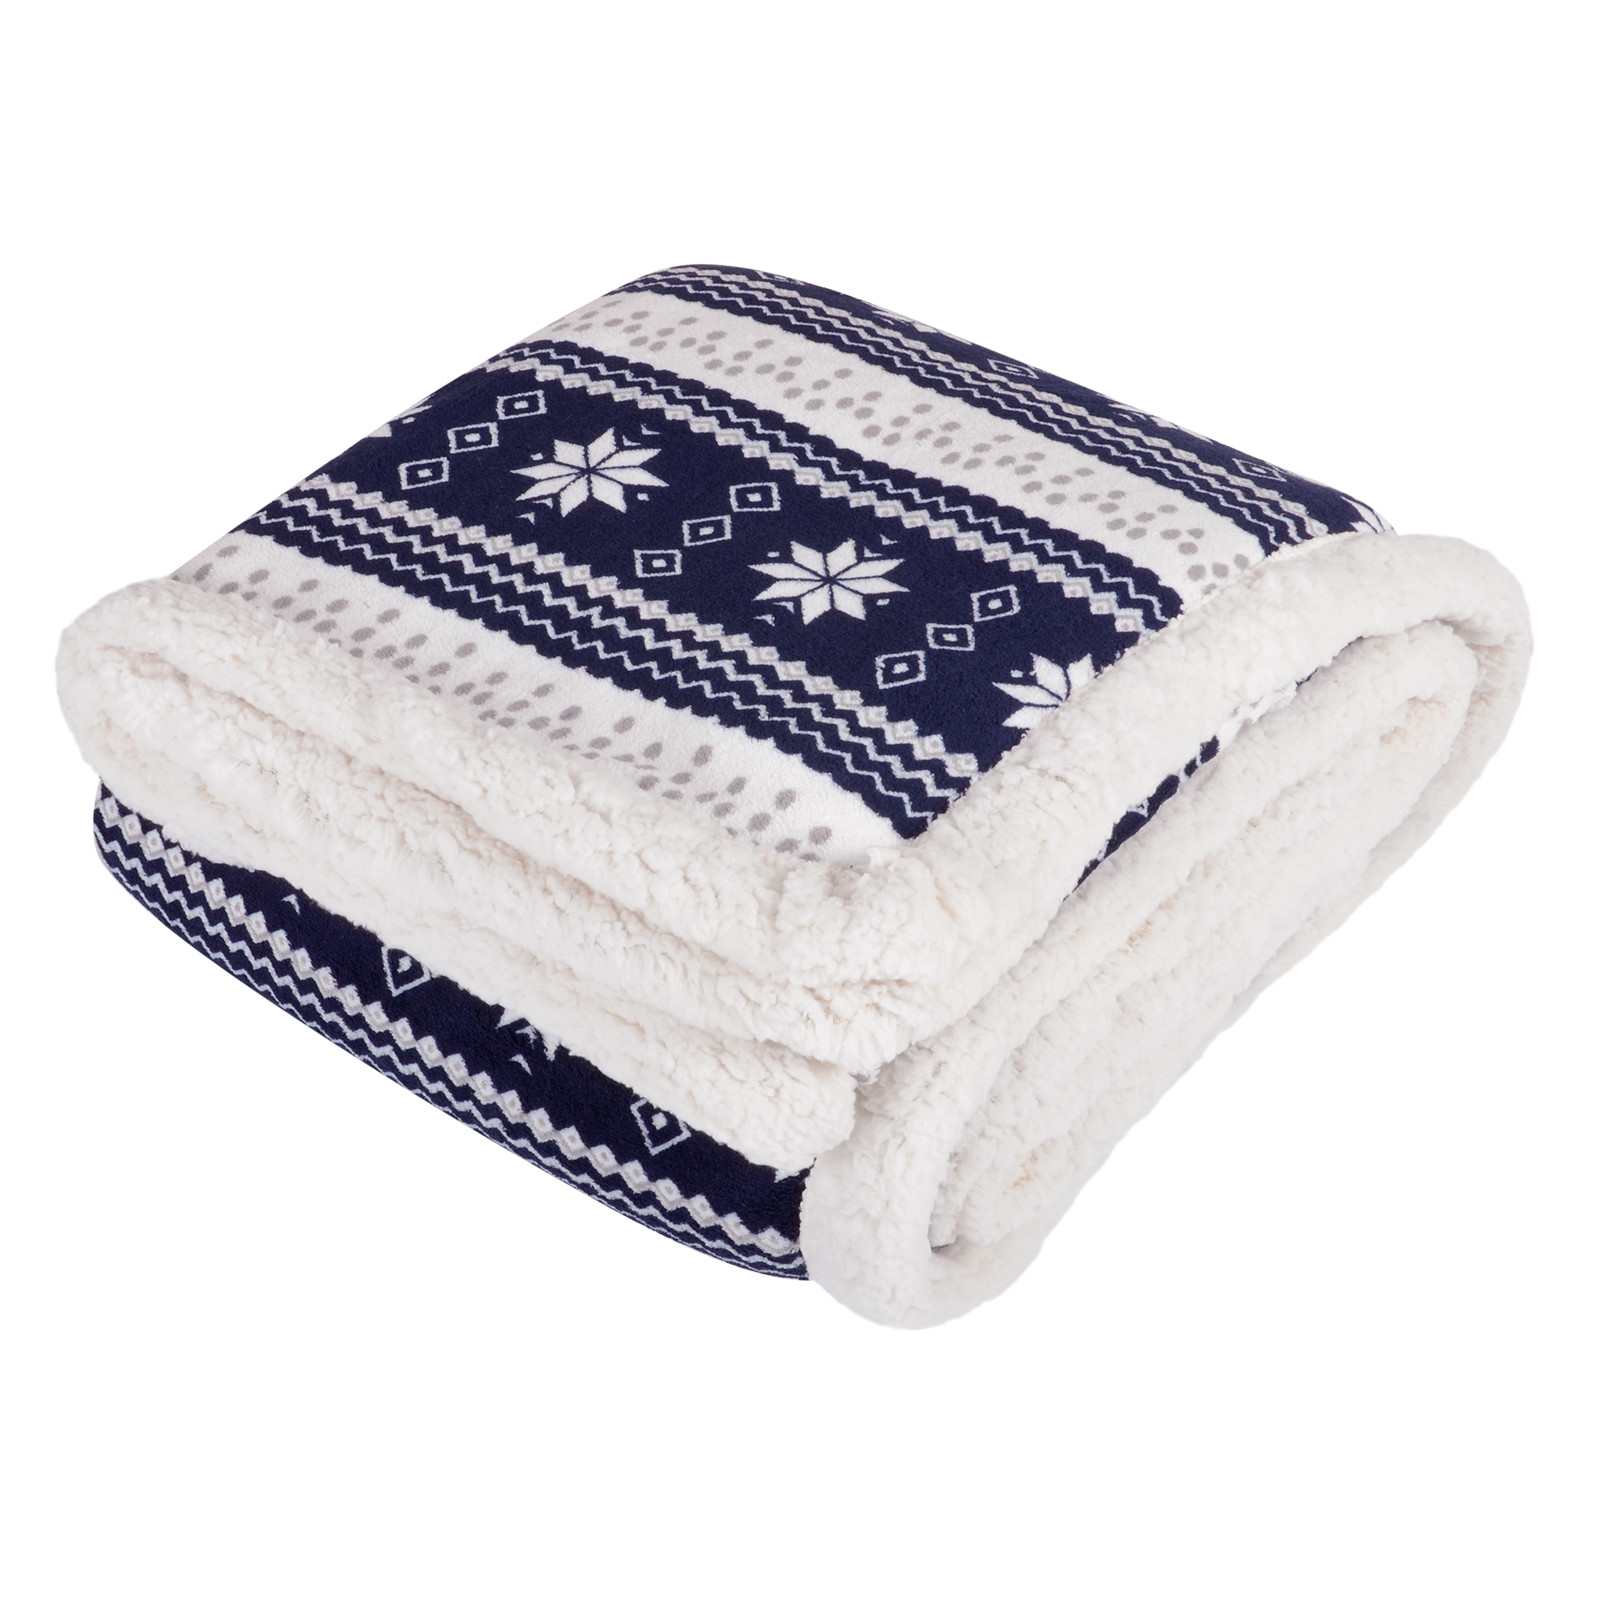 Snowflake Design Luxury Fleece Blanket Soft Sherpa Warm